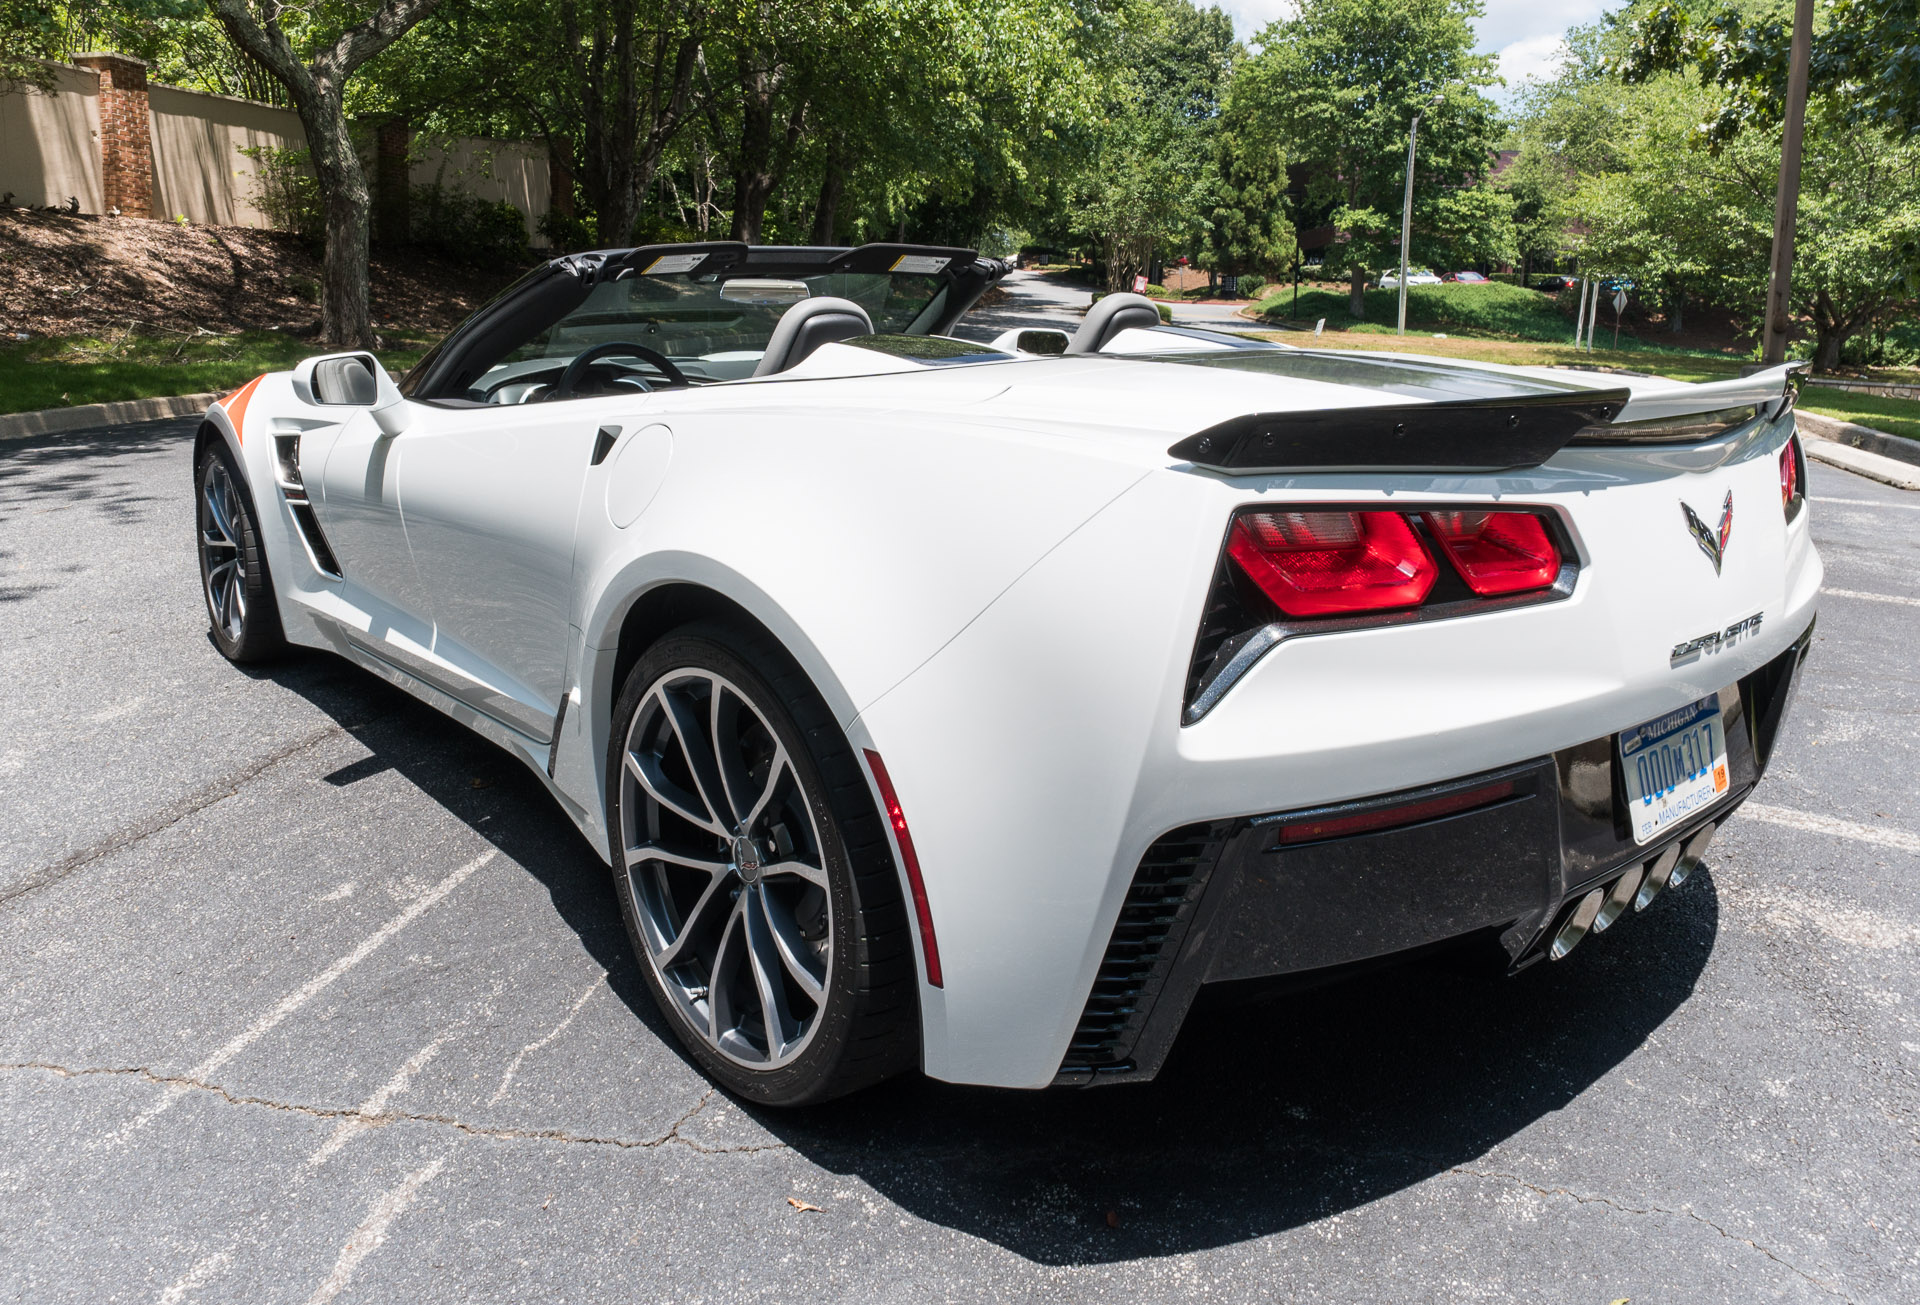 first drive review 2017 chevrolet corvette grand sport 95 octane. Black Bedroom Furniture Sets. Home Design Ideas